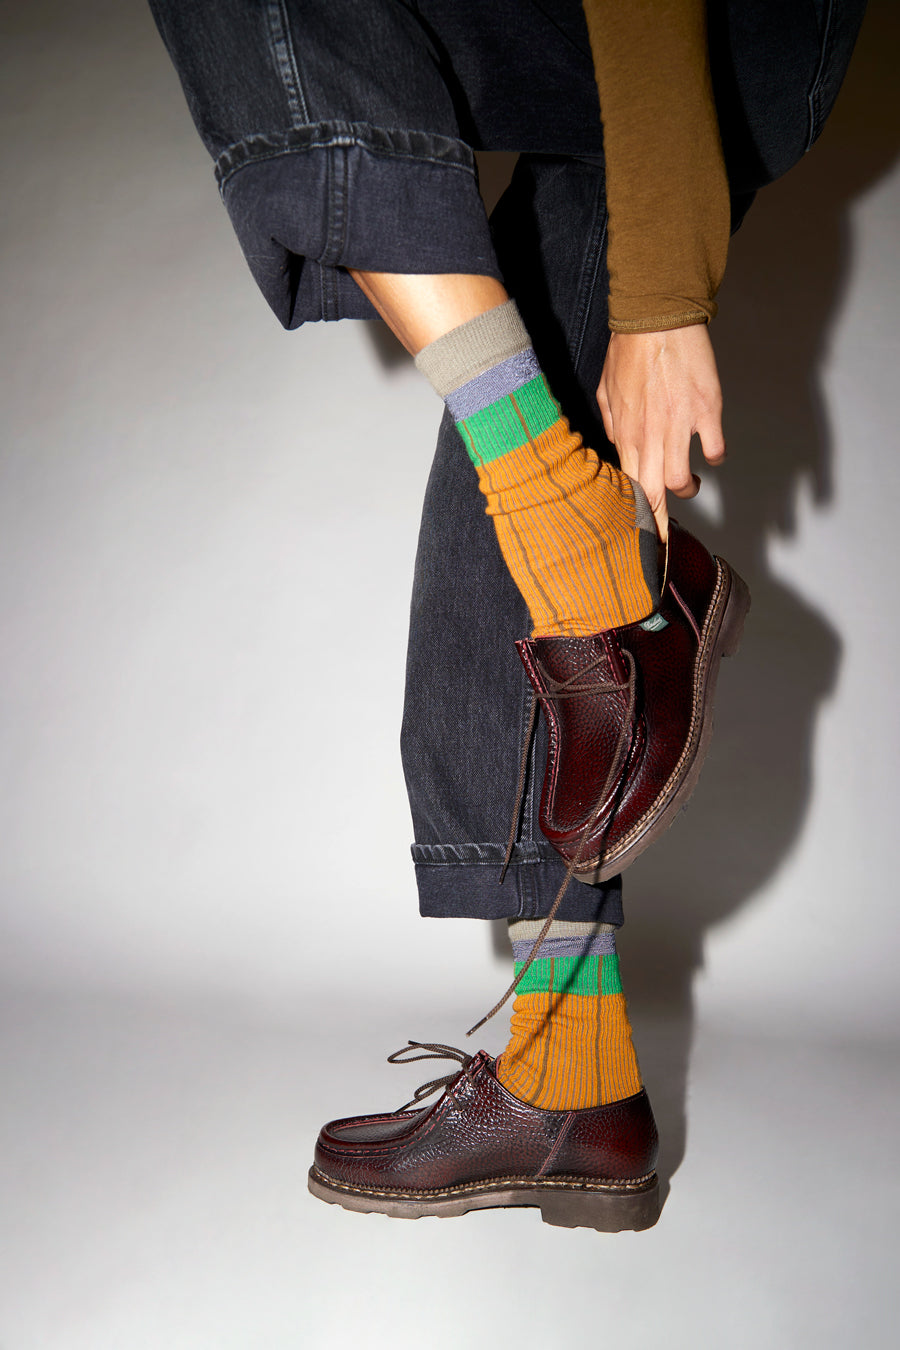 Exquisite J Striped Socks in Orange